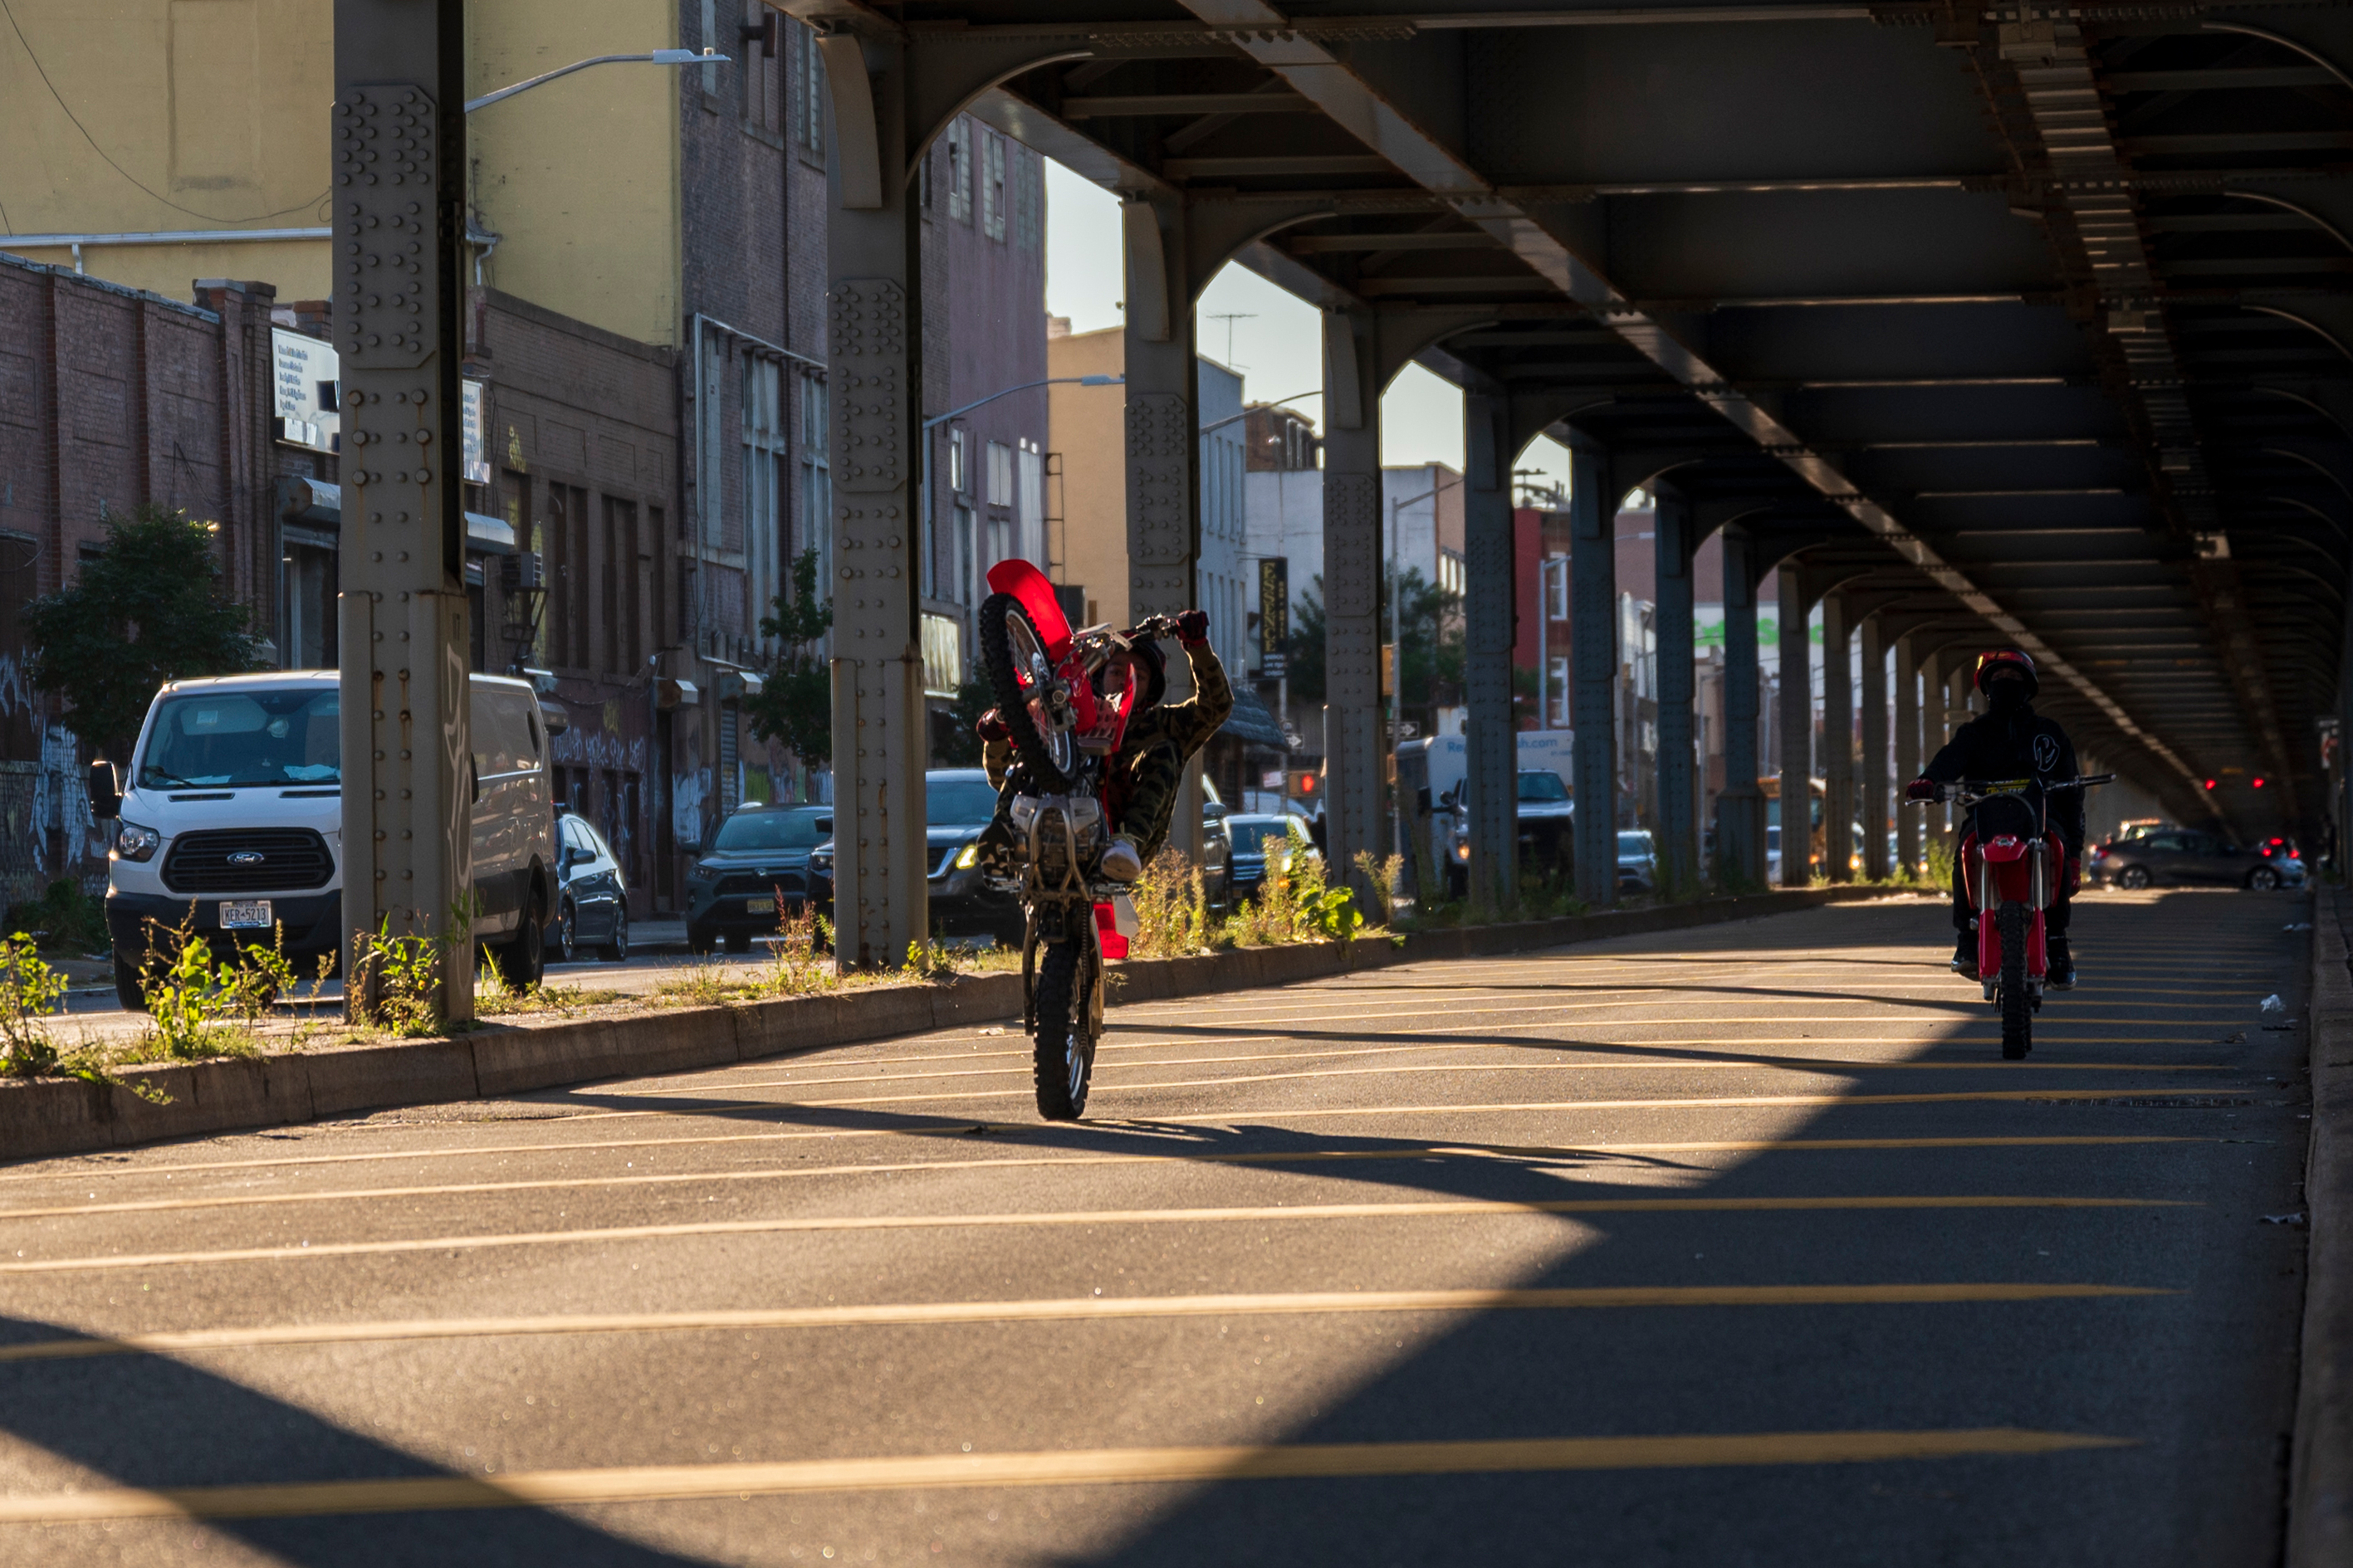 Two dirt bike riders show off their skills beneath the elevated LIRR tracks along Atlantic Avenue in Brooklyn, Sept. 24, 2021.